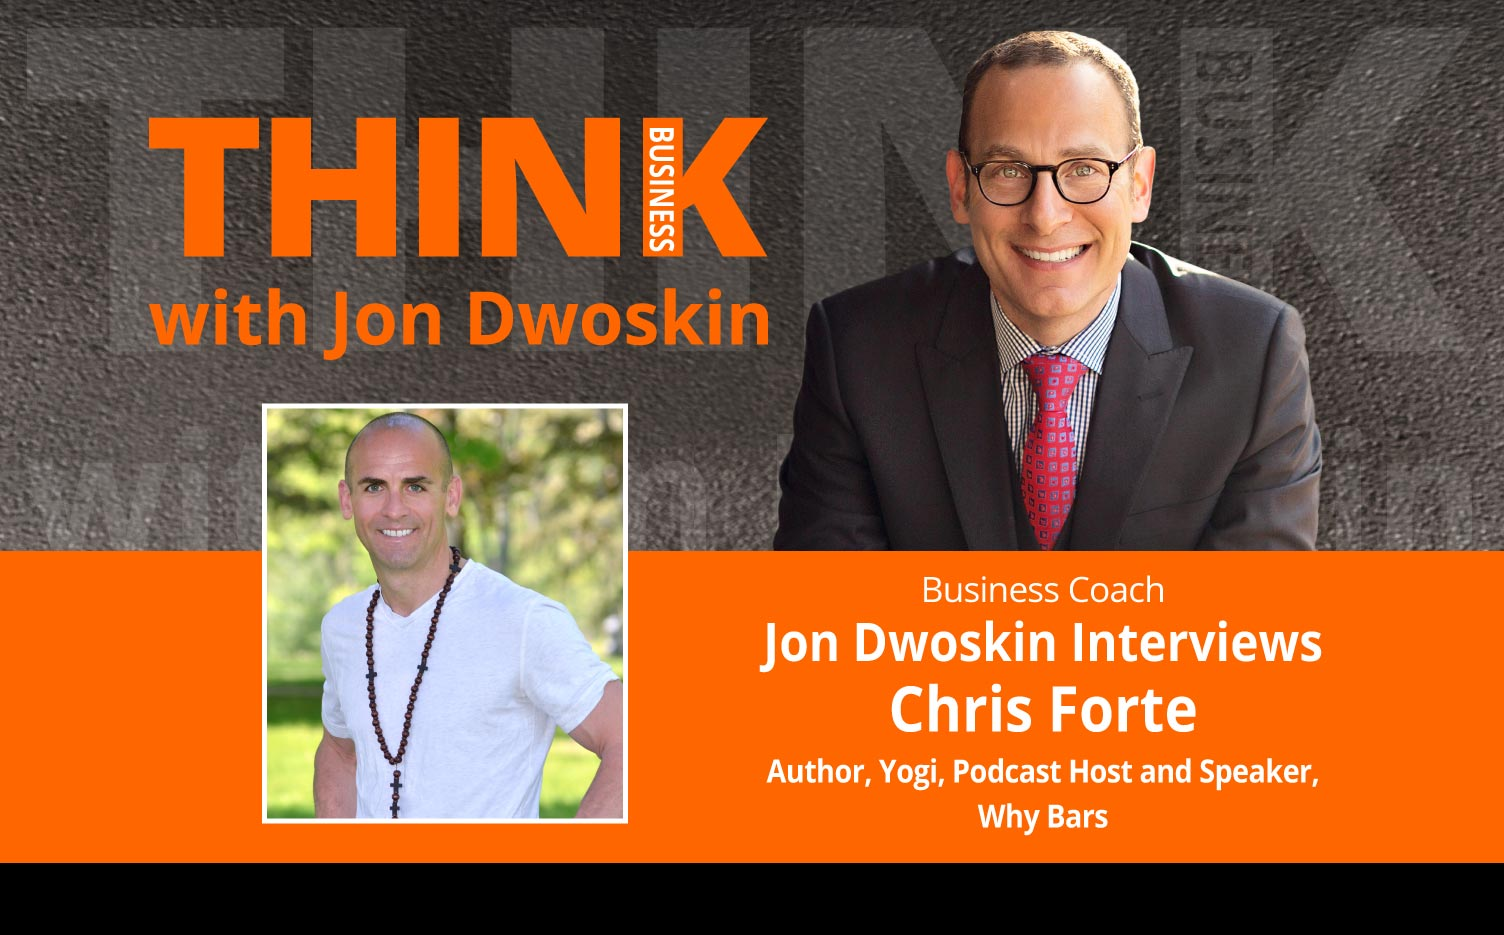 THINK Business Podcast: Jon Dwoskin Interviews Chris Forte, Author, Yogi, Podcast Host and Speaker, Why Bars